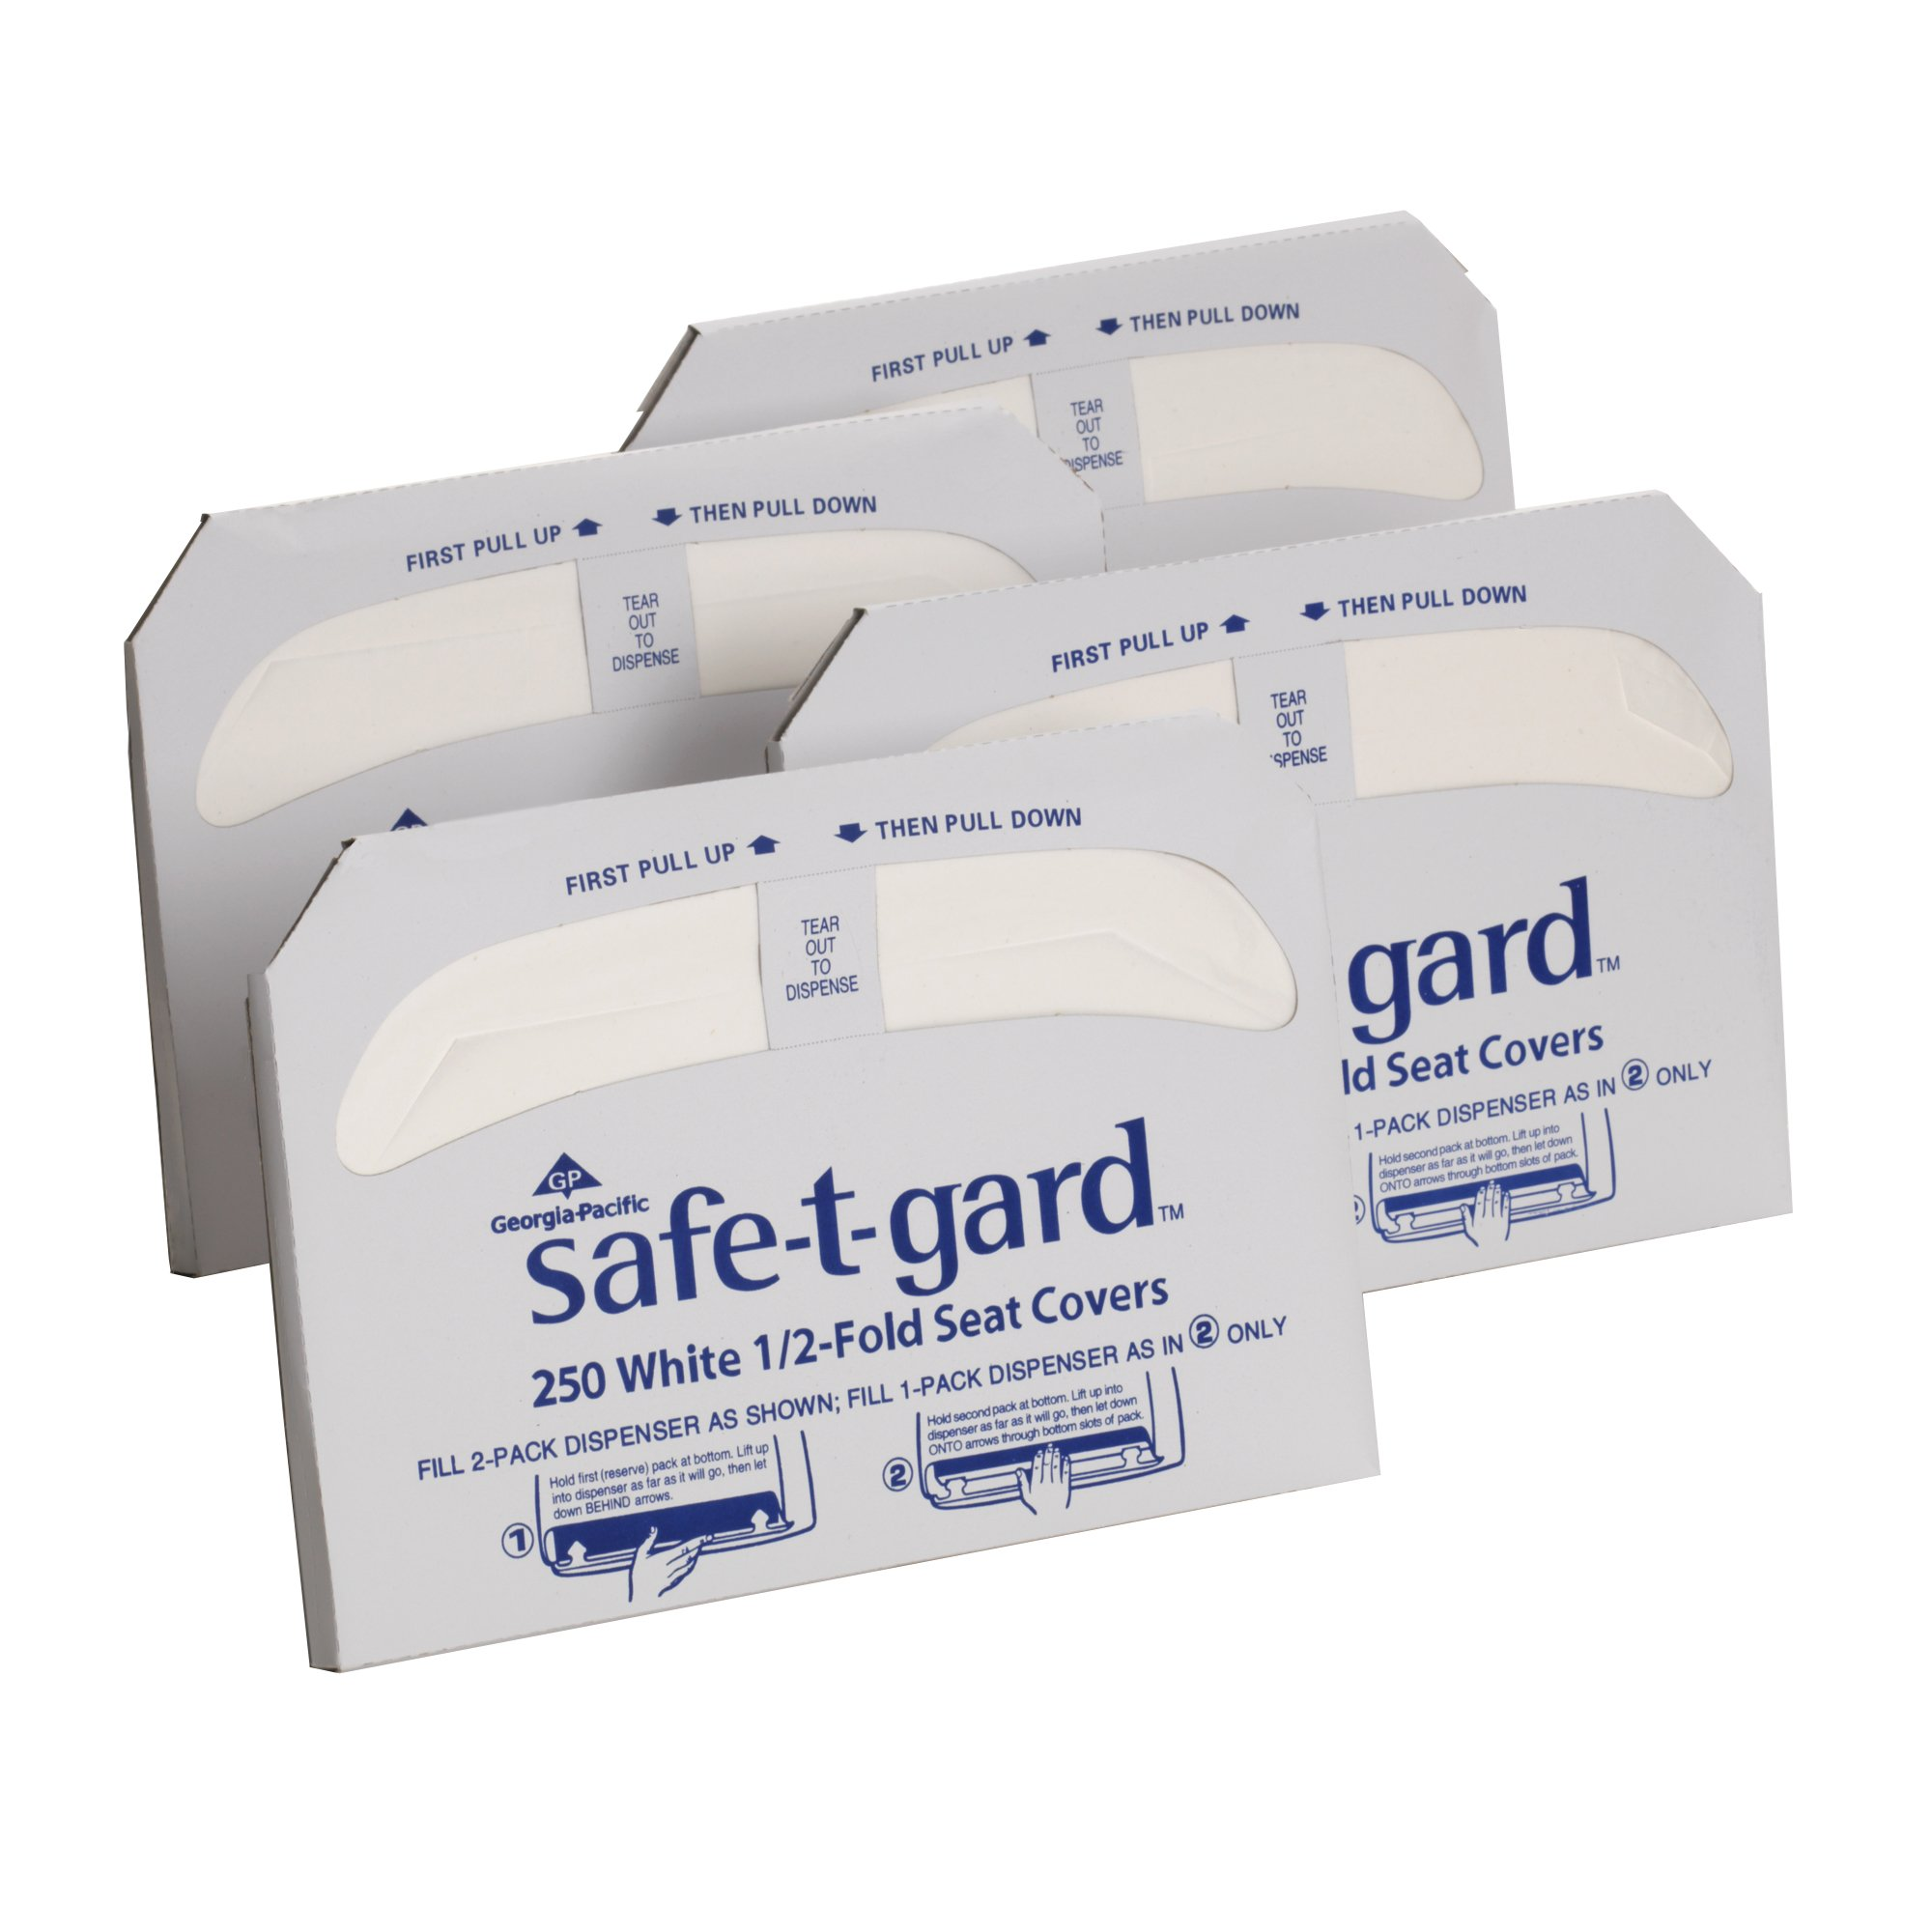 """Georgia-Pacific Safe-T-Gard 47052 White 1/2-Fold Toilet Seat Cover, 17.44"""" Length x 14.5"""" Width (Case of 4 Packs, 250 Per Pack)"""